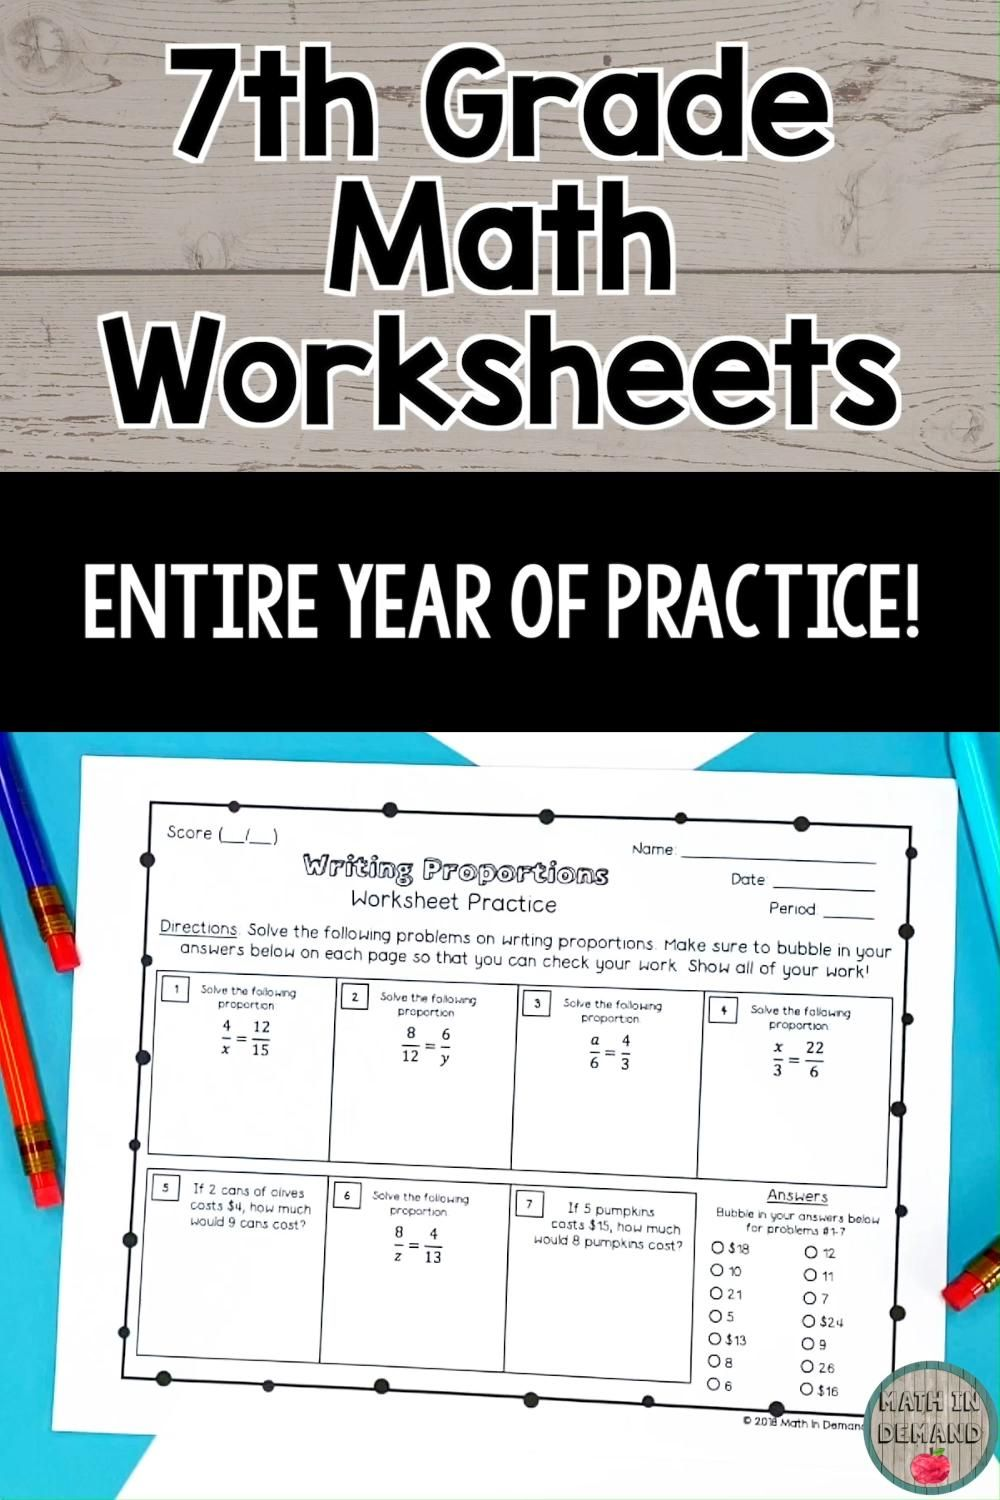 7th Grade Math Practice Worksheets Video In 2021 7th Grade Math Math Resources Math Practice Worksheets [ 1500 x 1000 Pixel ]